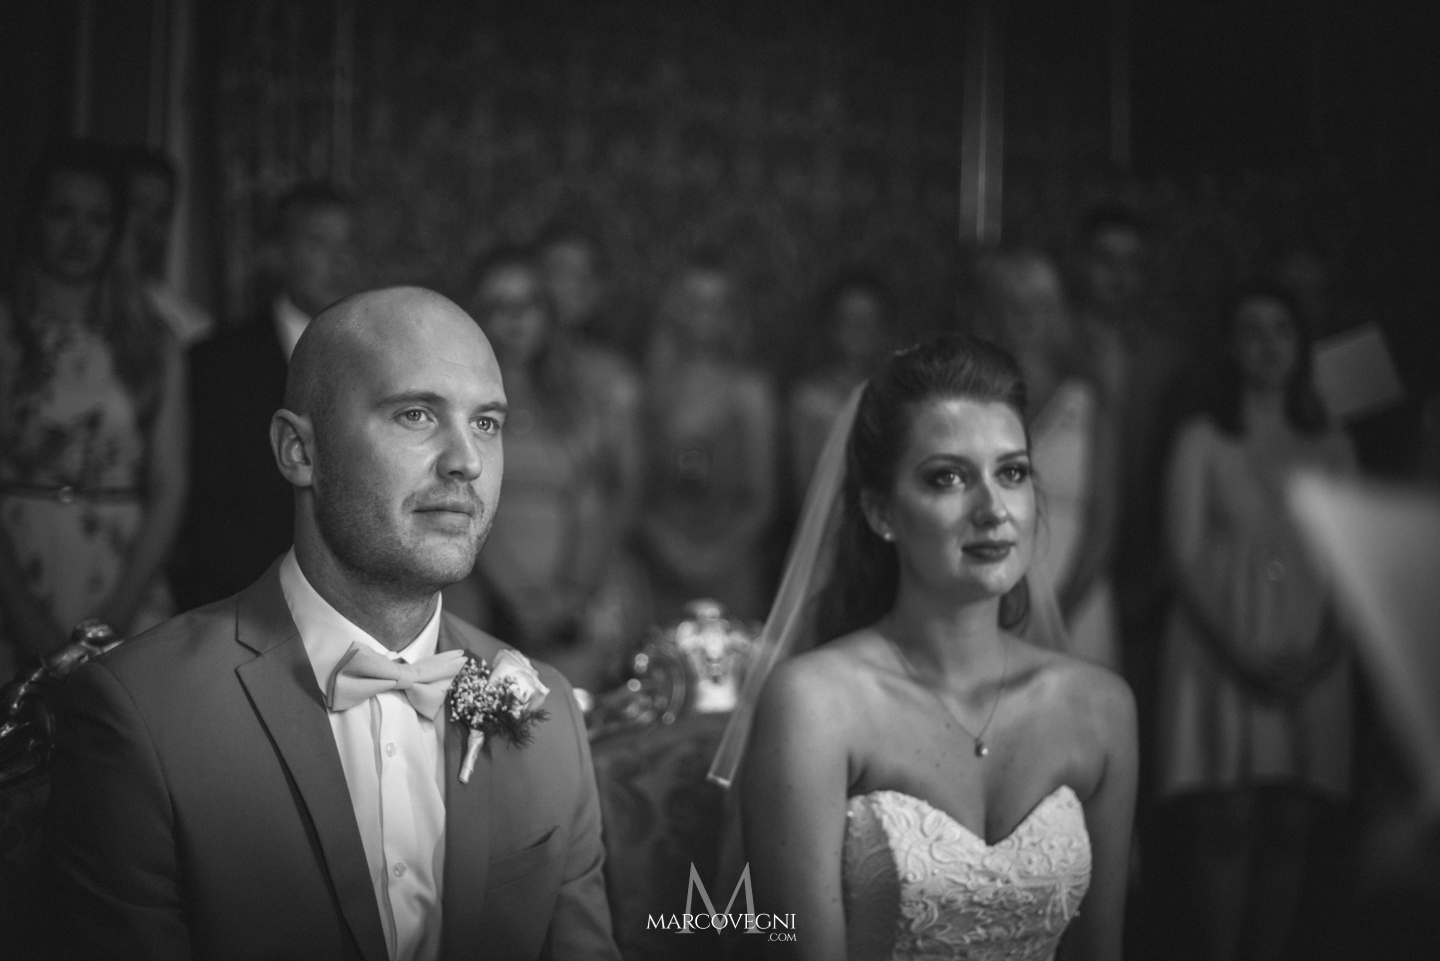 Wedding Photographer Lucca Marco Vegni